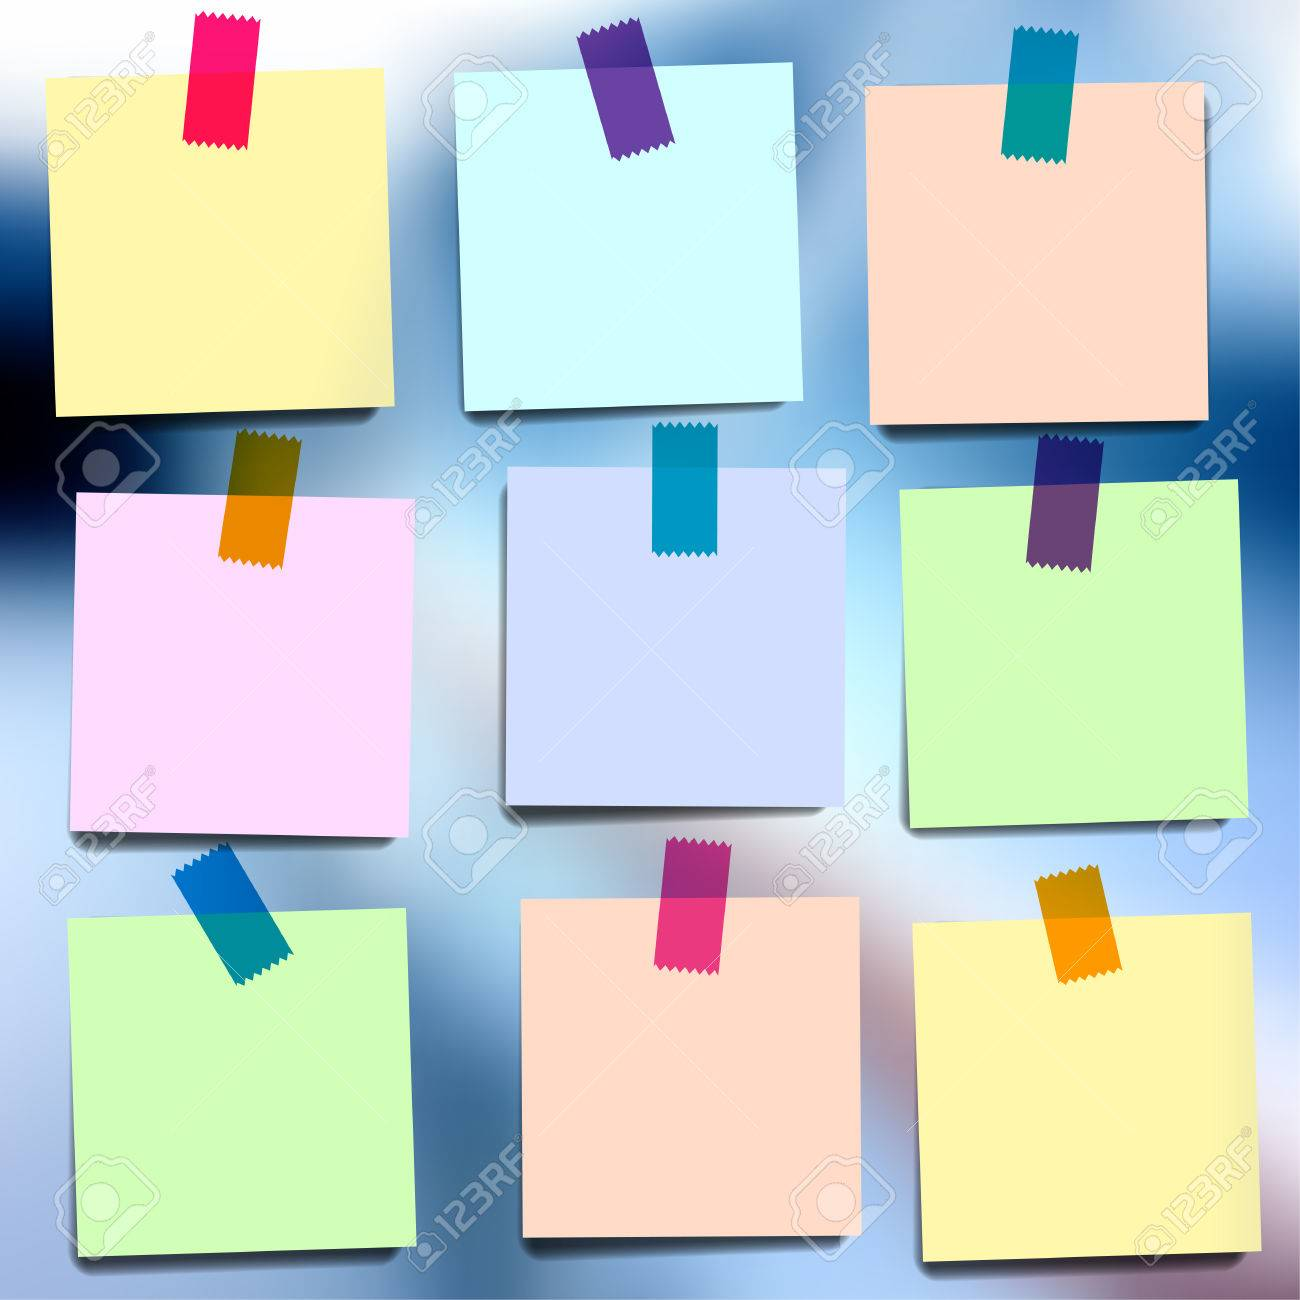 Free vector graphic sticky note note info paper free image on - Sticky Notes Wallpapers On Blurred Vector Background Stock Vector 40380476